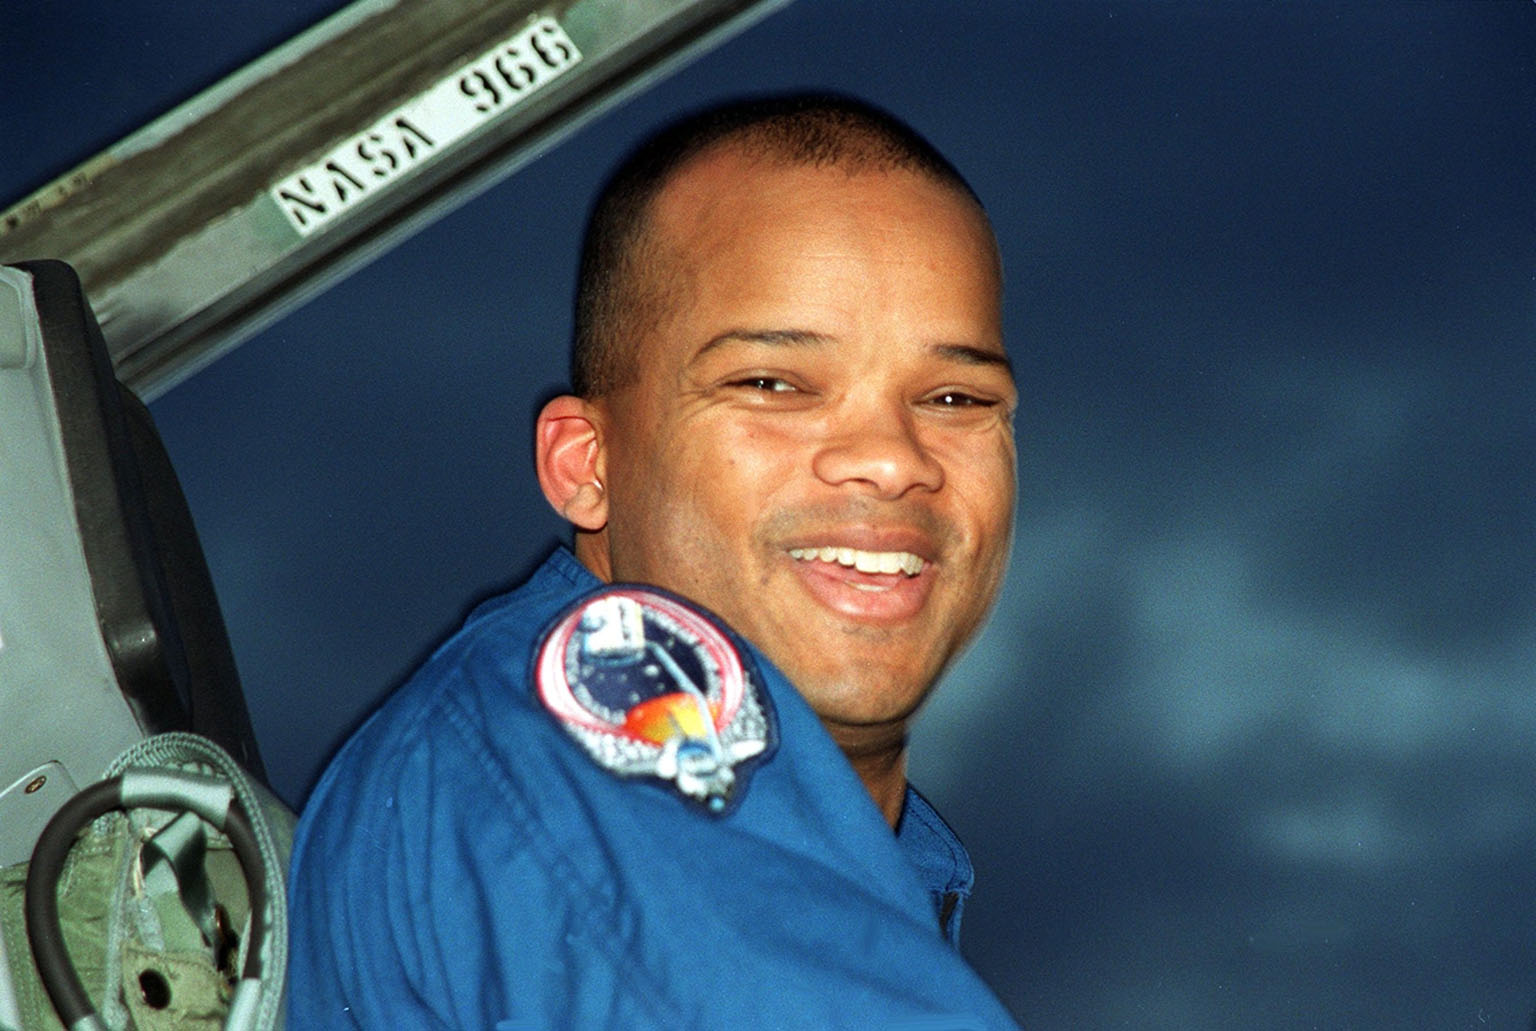 STS-98 Mission Specialist Robert Curbeam grins after his arrival at KSC?s Shuttle Landing Facility for Terminal Countdown Test Activities. In preparation for the Jan. 19 launch, he and the rest of the crew Commander Ken Cockrell, Pilot Mark Polansky and Mission Specialists Thomas Jones and Marsha Ivins will be training in emergency procedures from the pad, checking the payload and taking part in a simulated countdown. The payload for the mission is the U.S. Lab Destiny, a key element in the construction of the International Space Station. The lab has five system racks already installed inside the module. After delivery of electronics in the lab, electrically powered attitude control for Control Moment Gyroscopes will be activated. STS-98 is the seventh construction flight to the ISS.